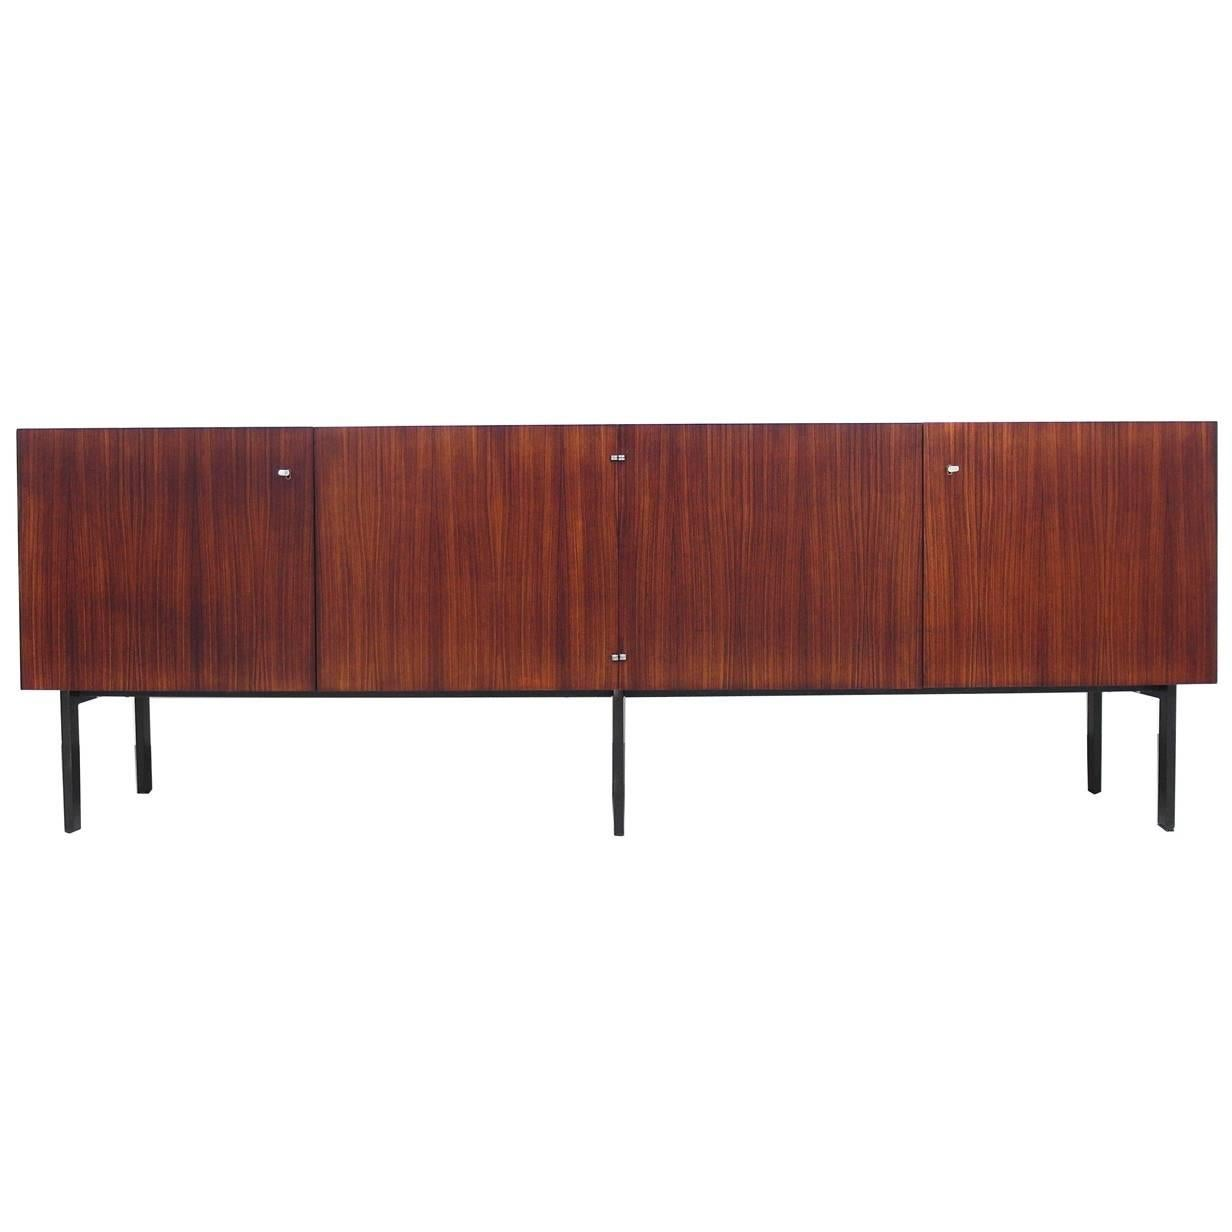 Fonction Meuble Cees Braakman Sideboard Du03 For Pastoe The Netherlands 1958